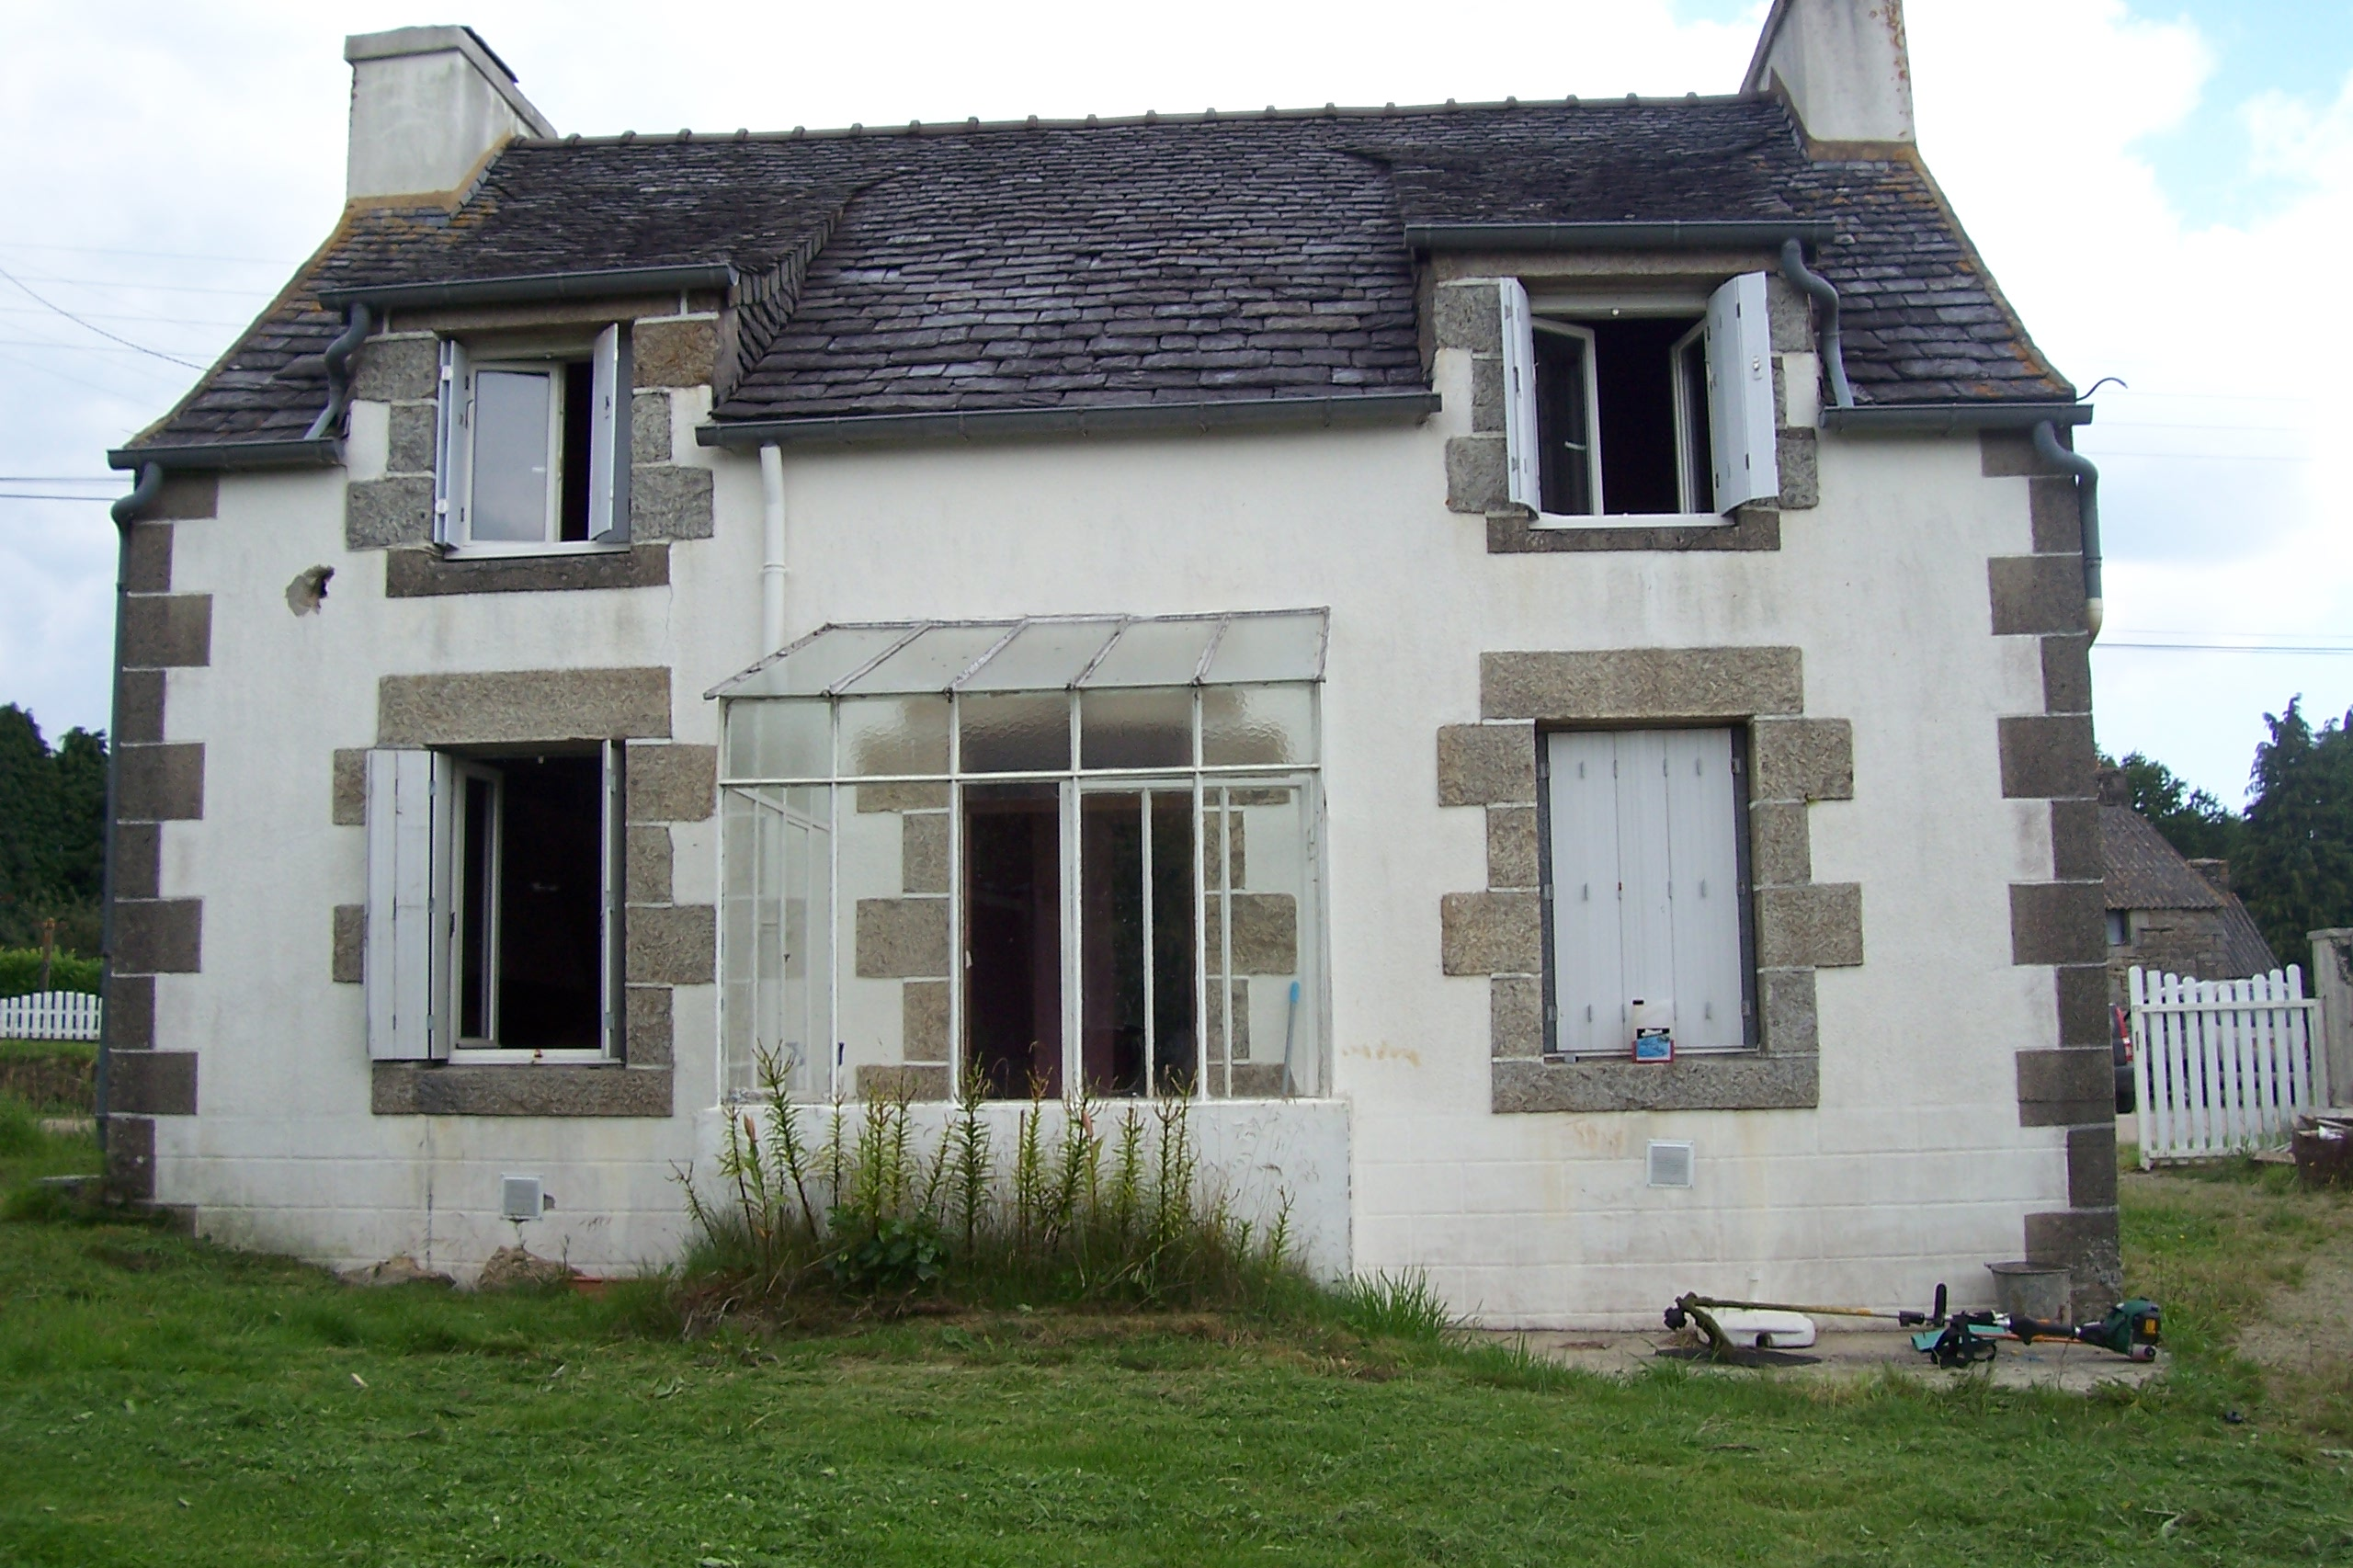 brittany-property-for-sale-M811-22914151-01